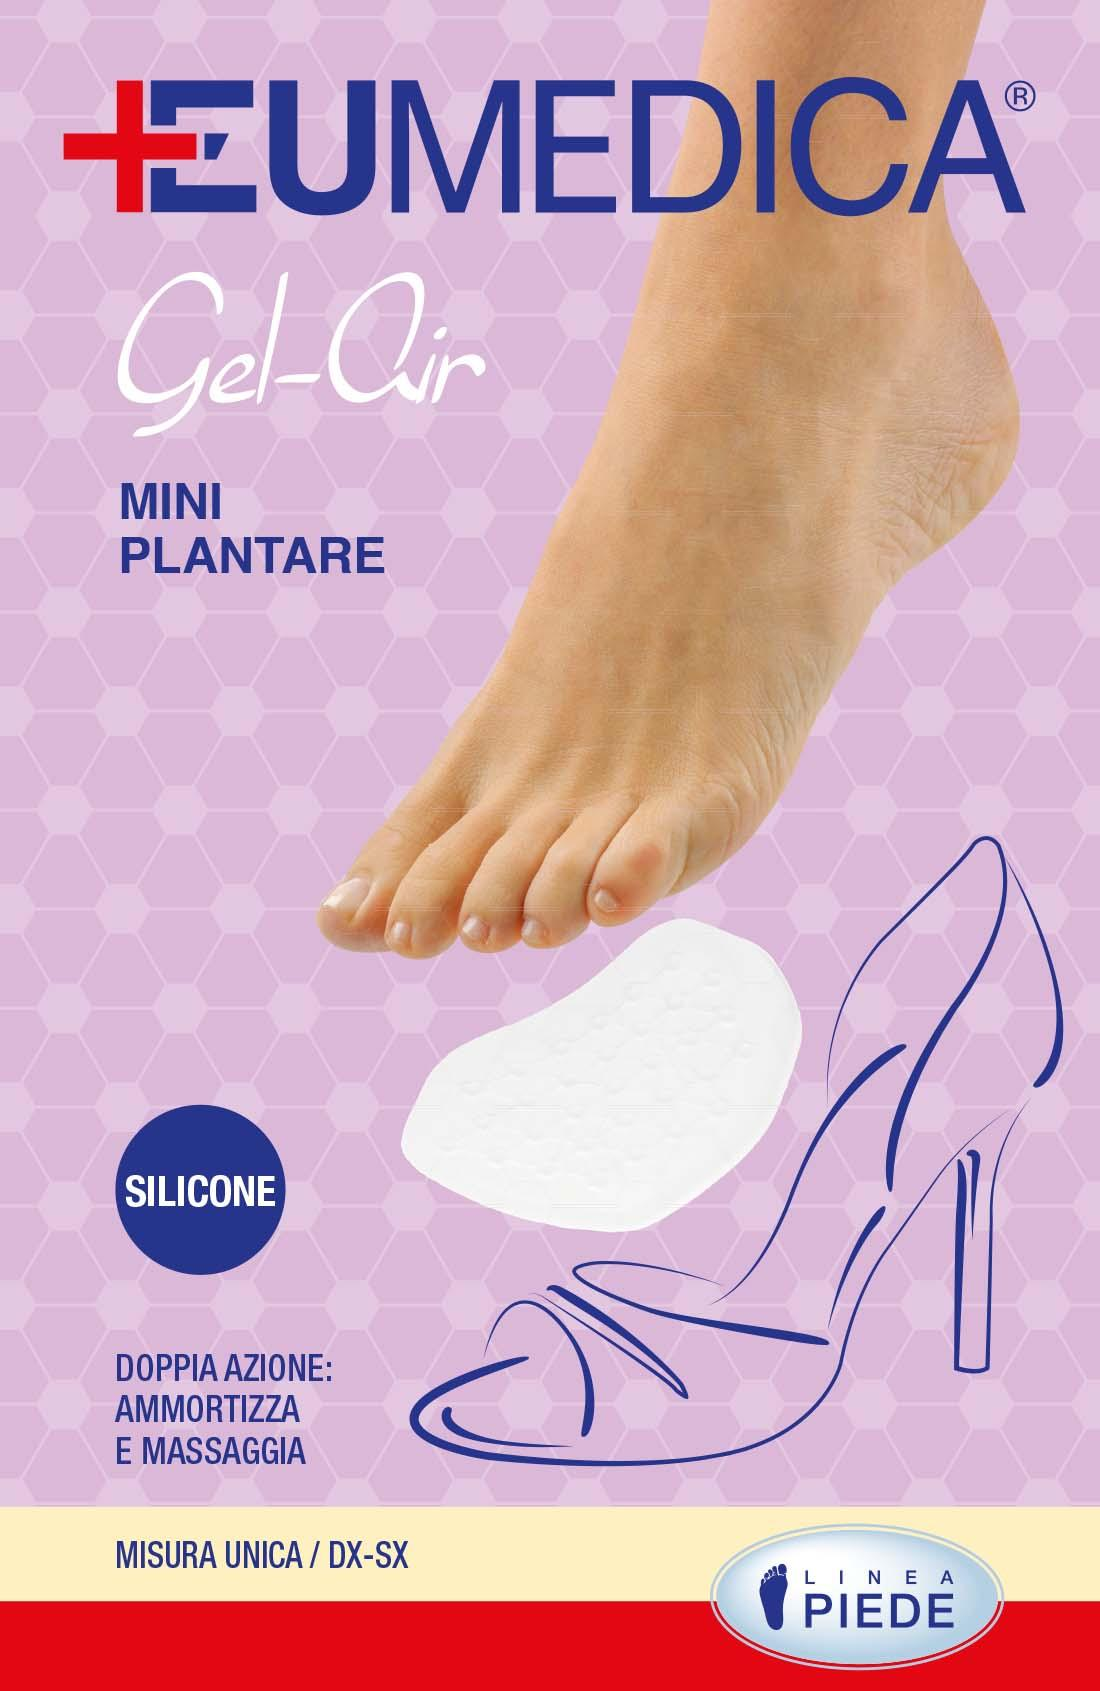 Gel - air mini - Supporto metatarsale